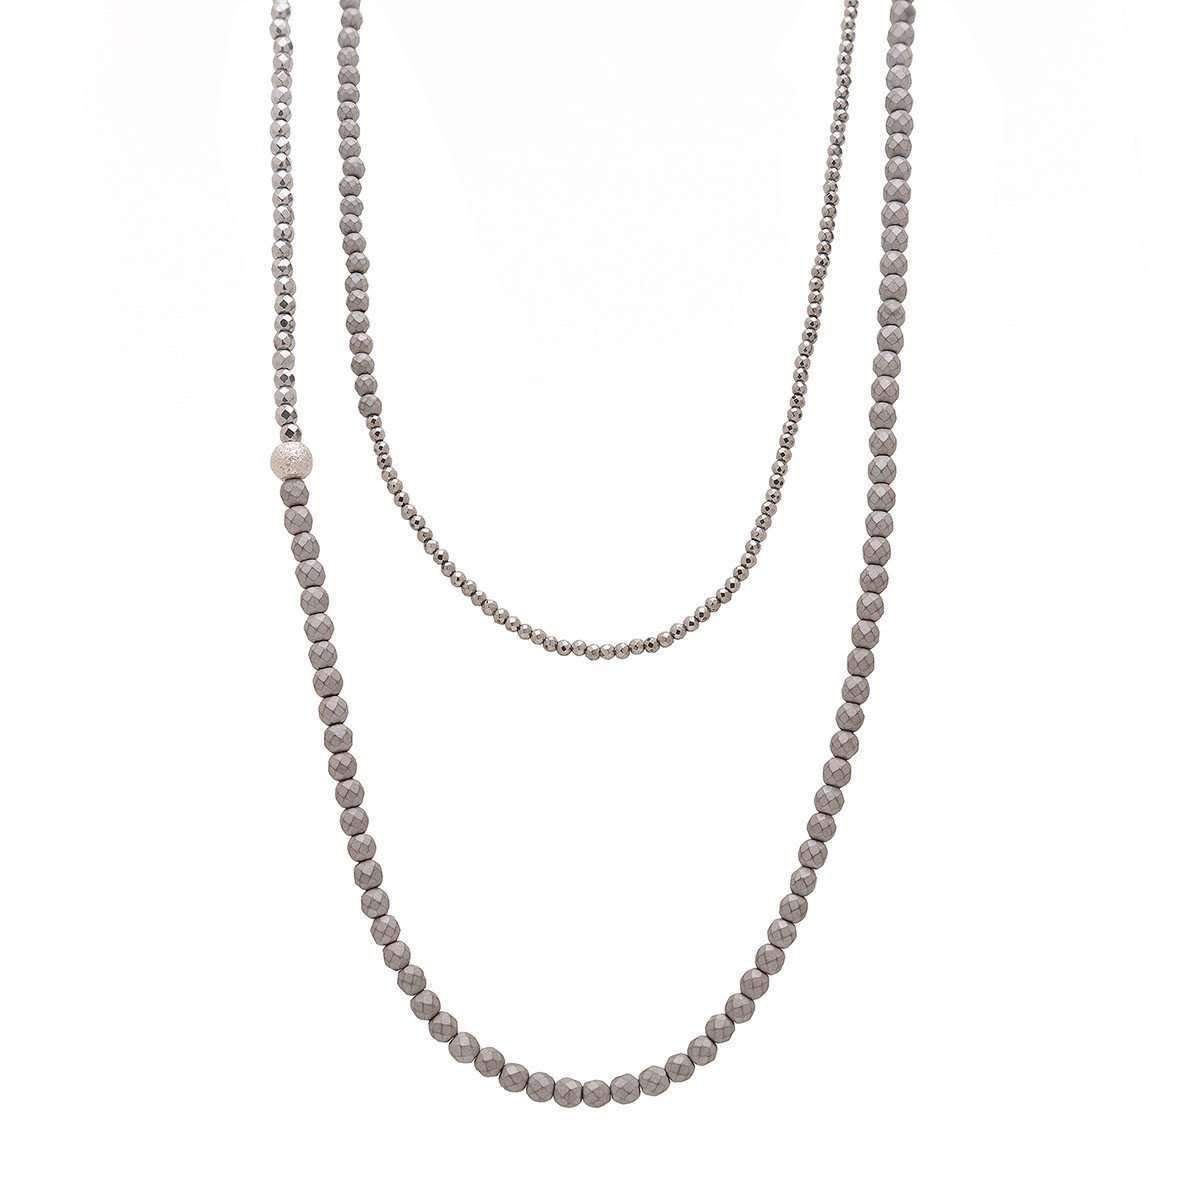 Argenton Design White And Rose Gold Diamond Moon And Two Stars Necklace - 16.5 Inches kaYXpuGg3